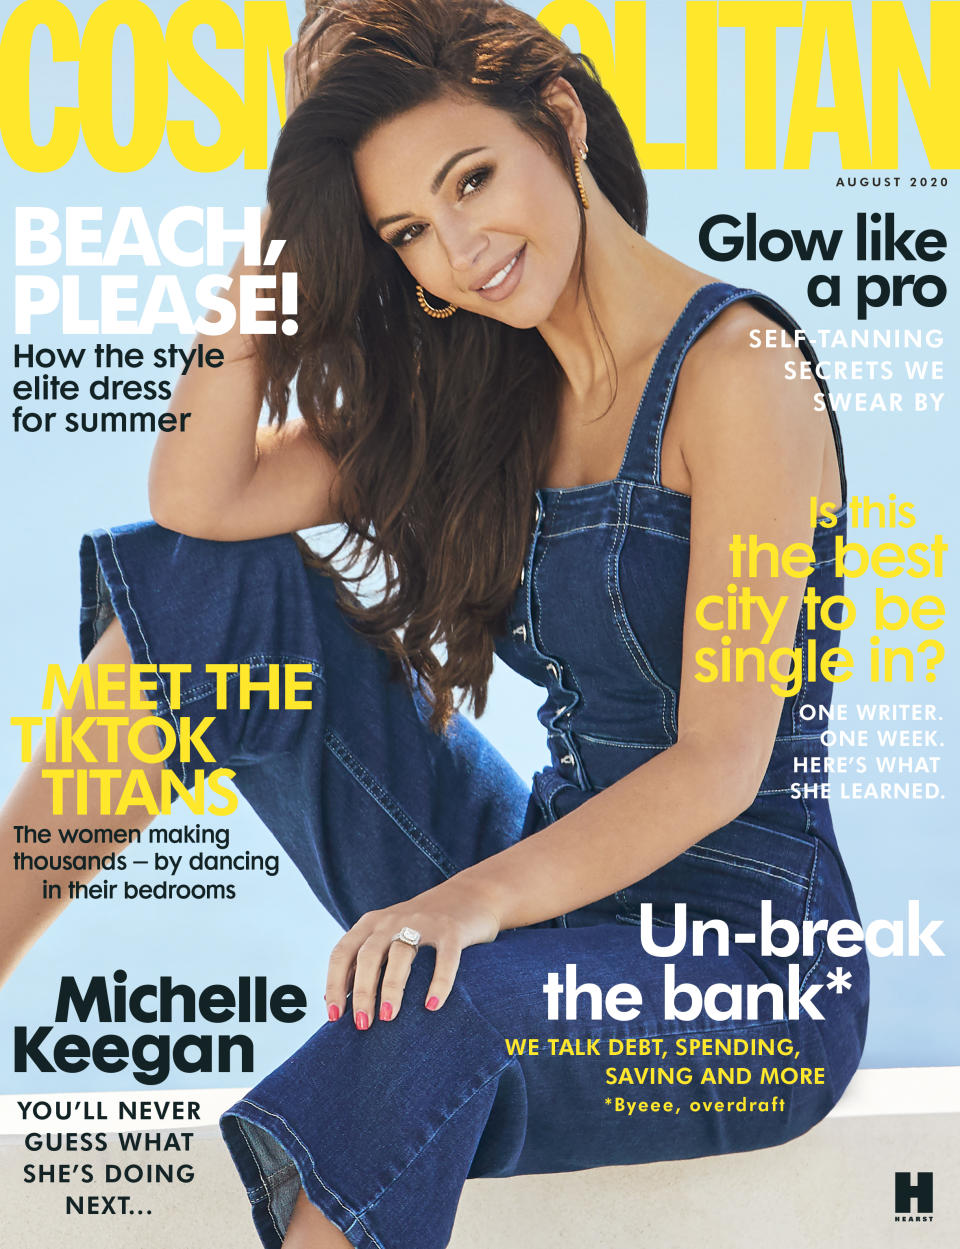 Michelle Keegan is Cosmo's cover girl for August 2020. (Cosmopolitan)